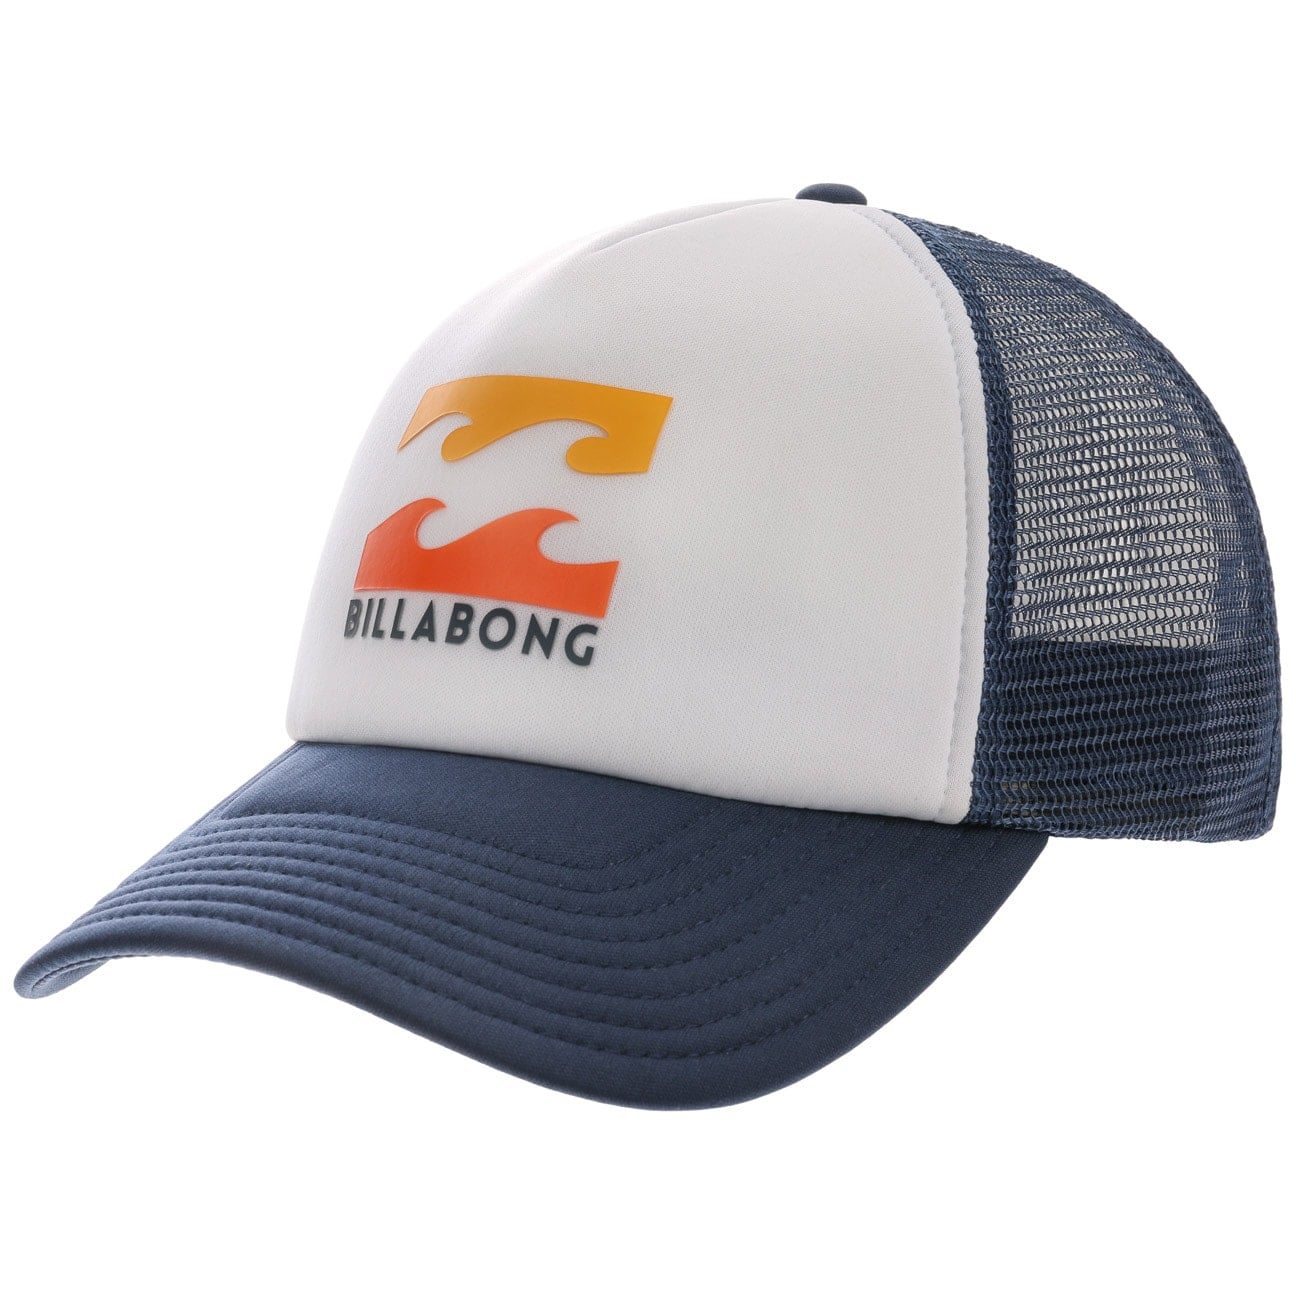 Gorra Podium Trucker by Billabong  snapback cap